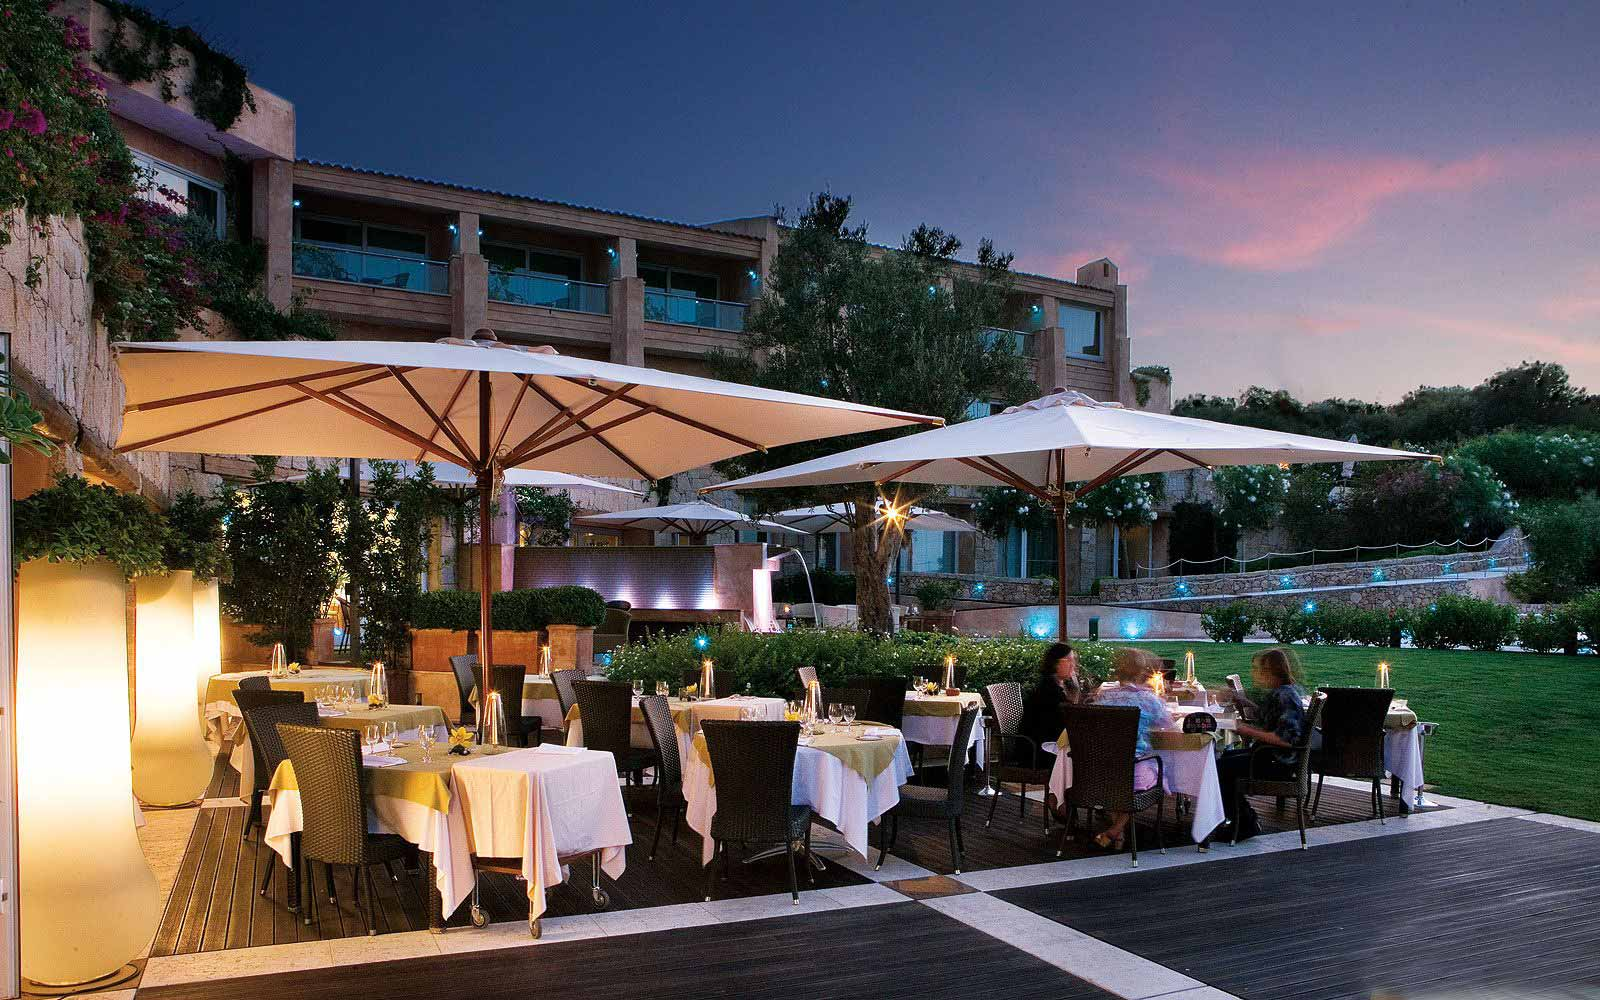 Outdoor dining at the L'Ea Bianca Luxury Resort